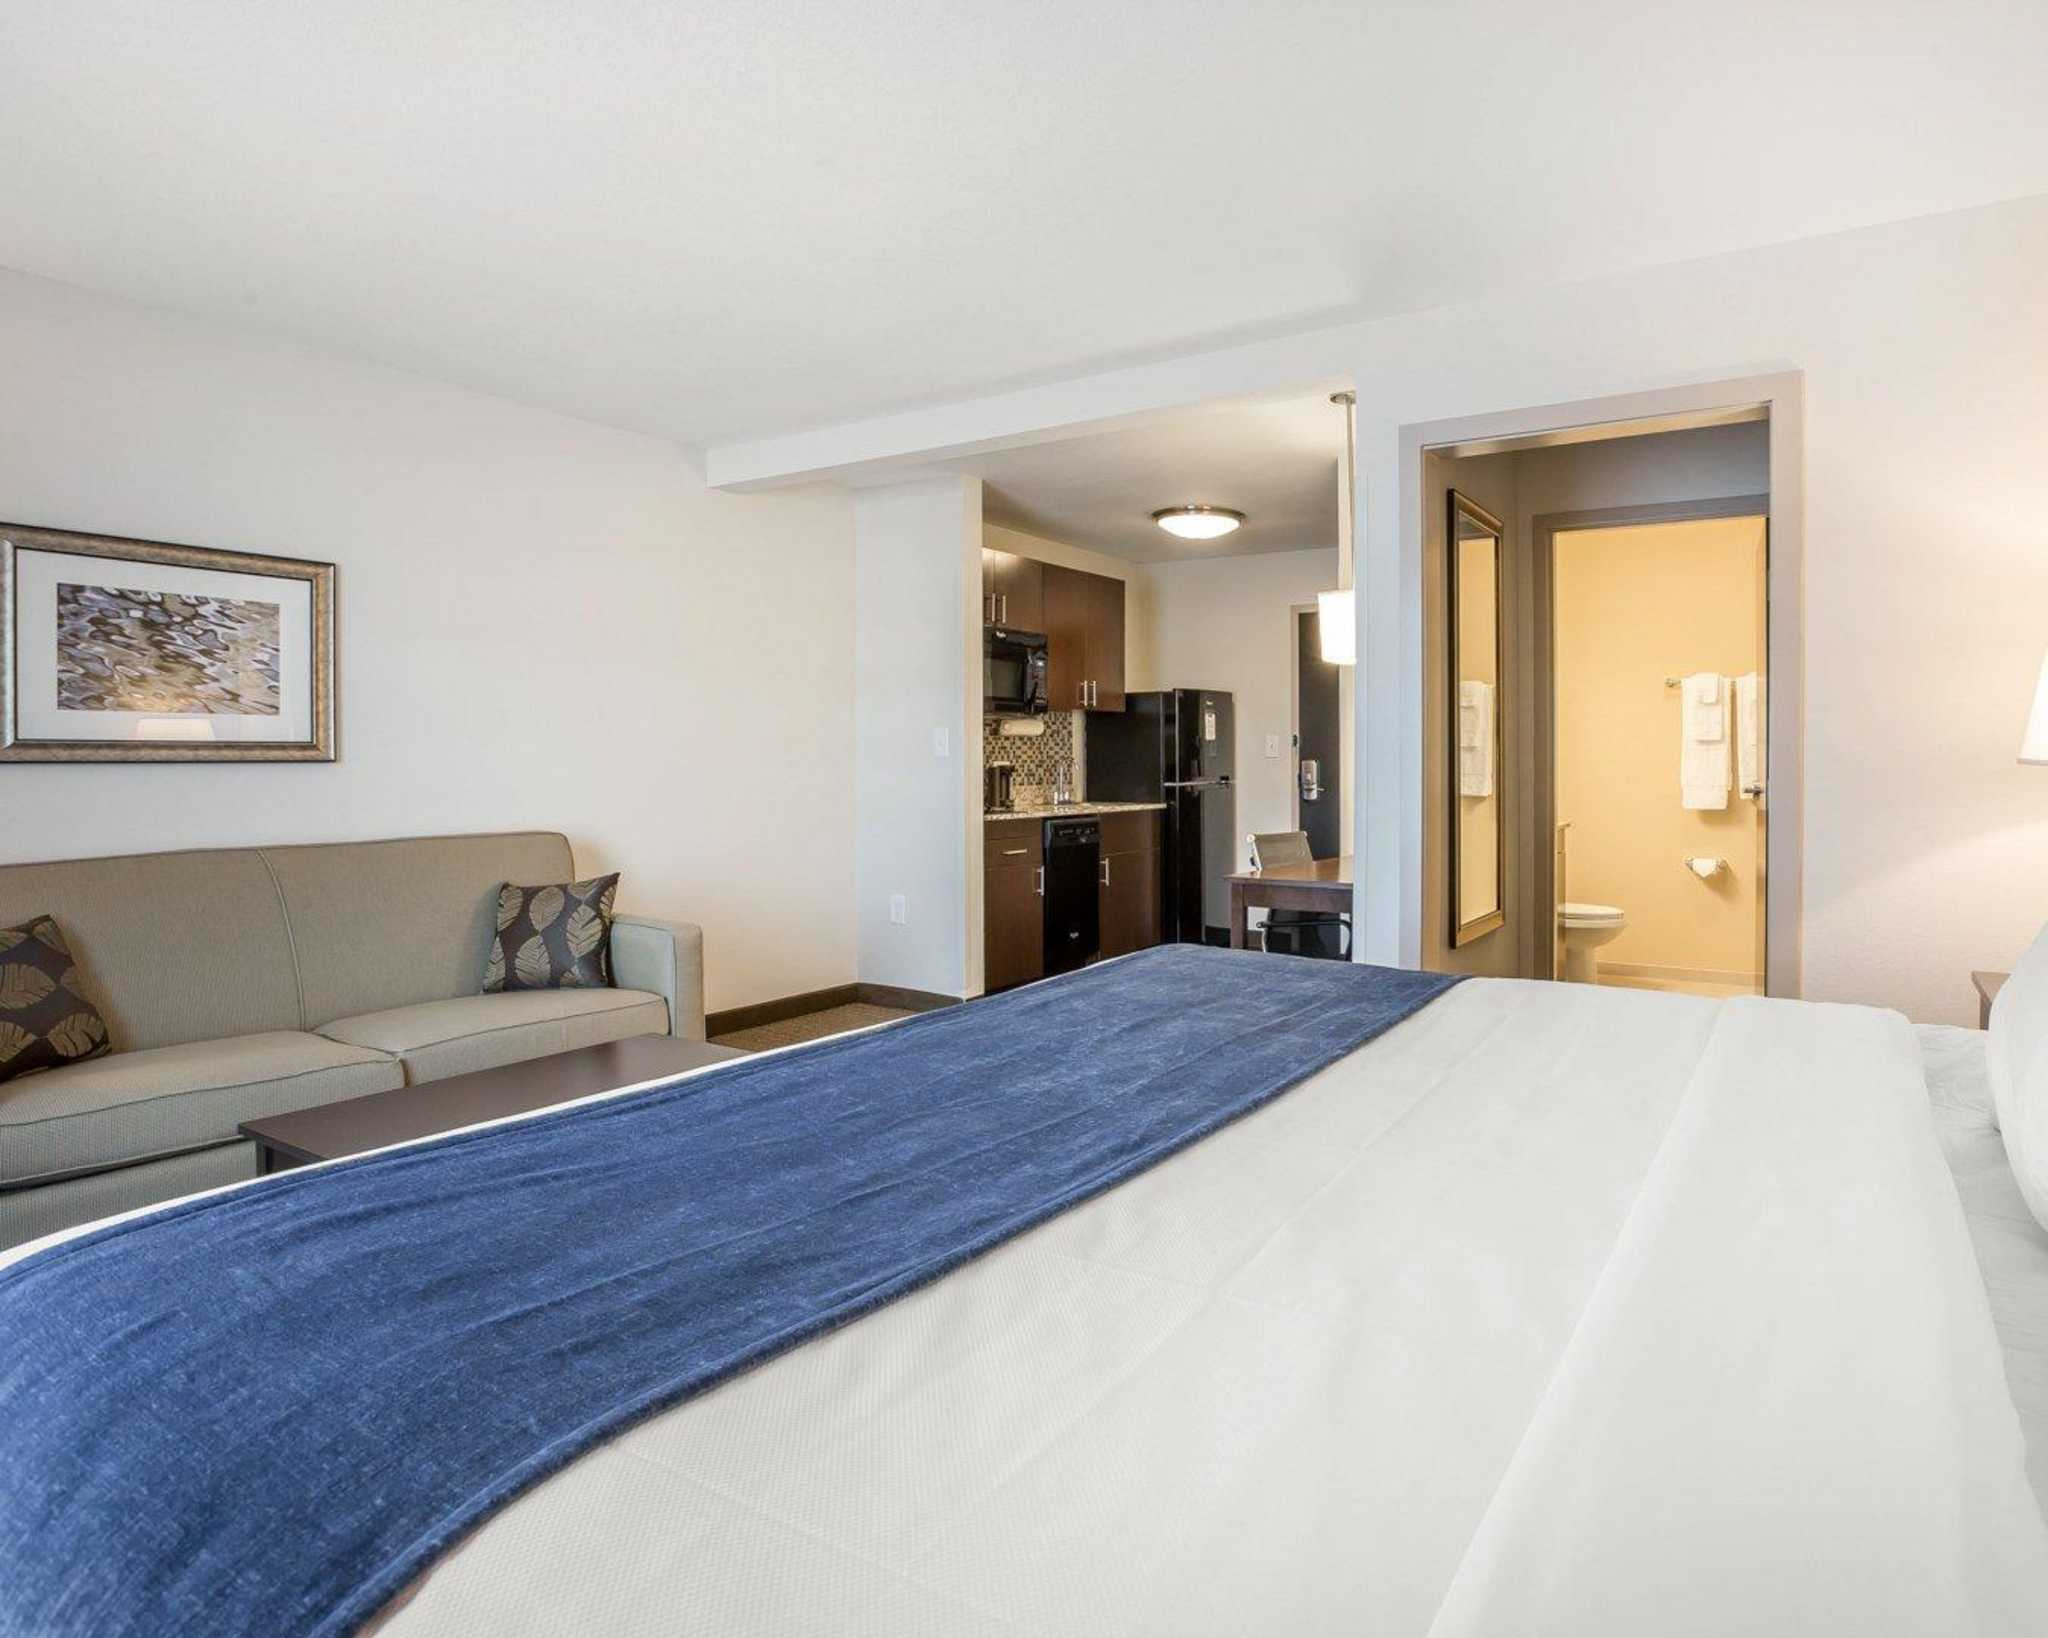 MainStay Suites Cartersville - Emerson Lake Point image 18